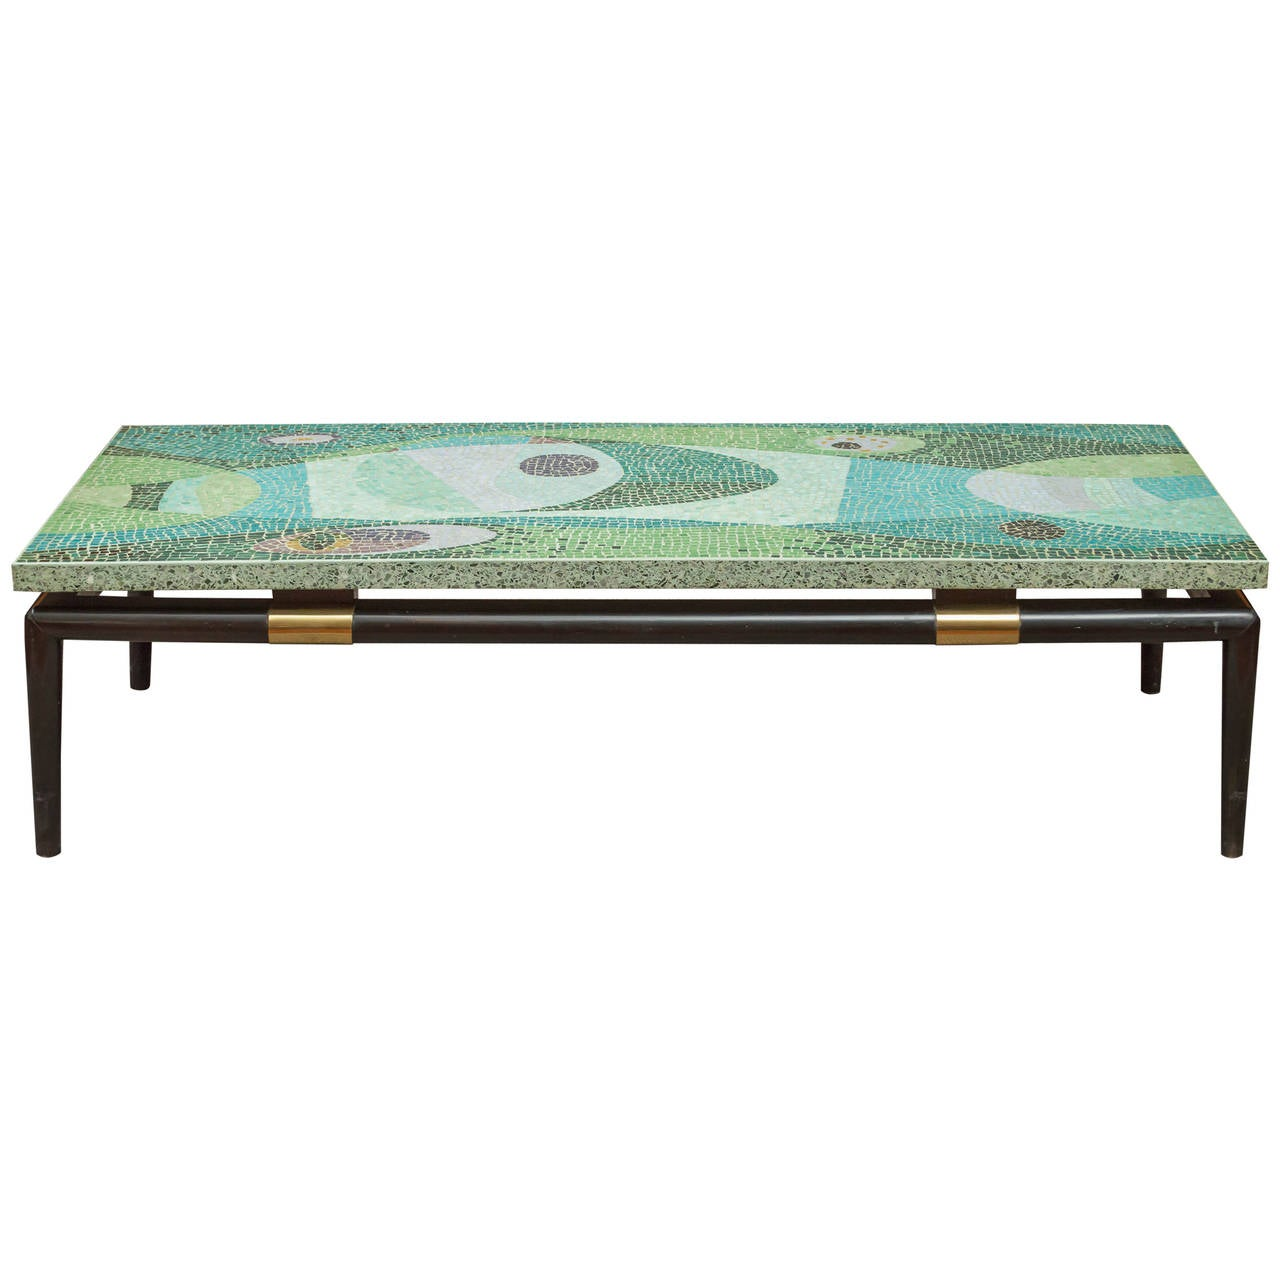 Mid century modern mosaic coffee table at 1stdibs Mid century coffee tables